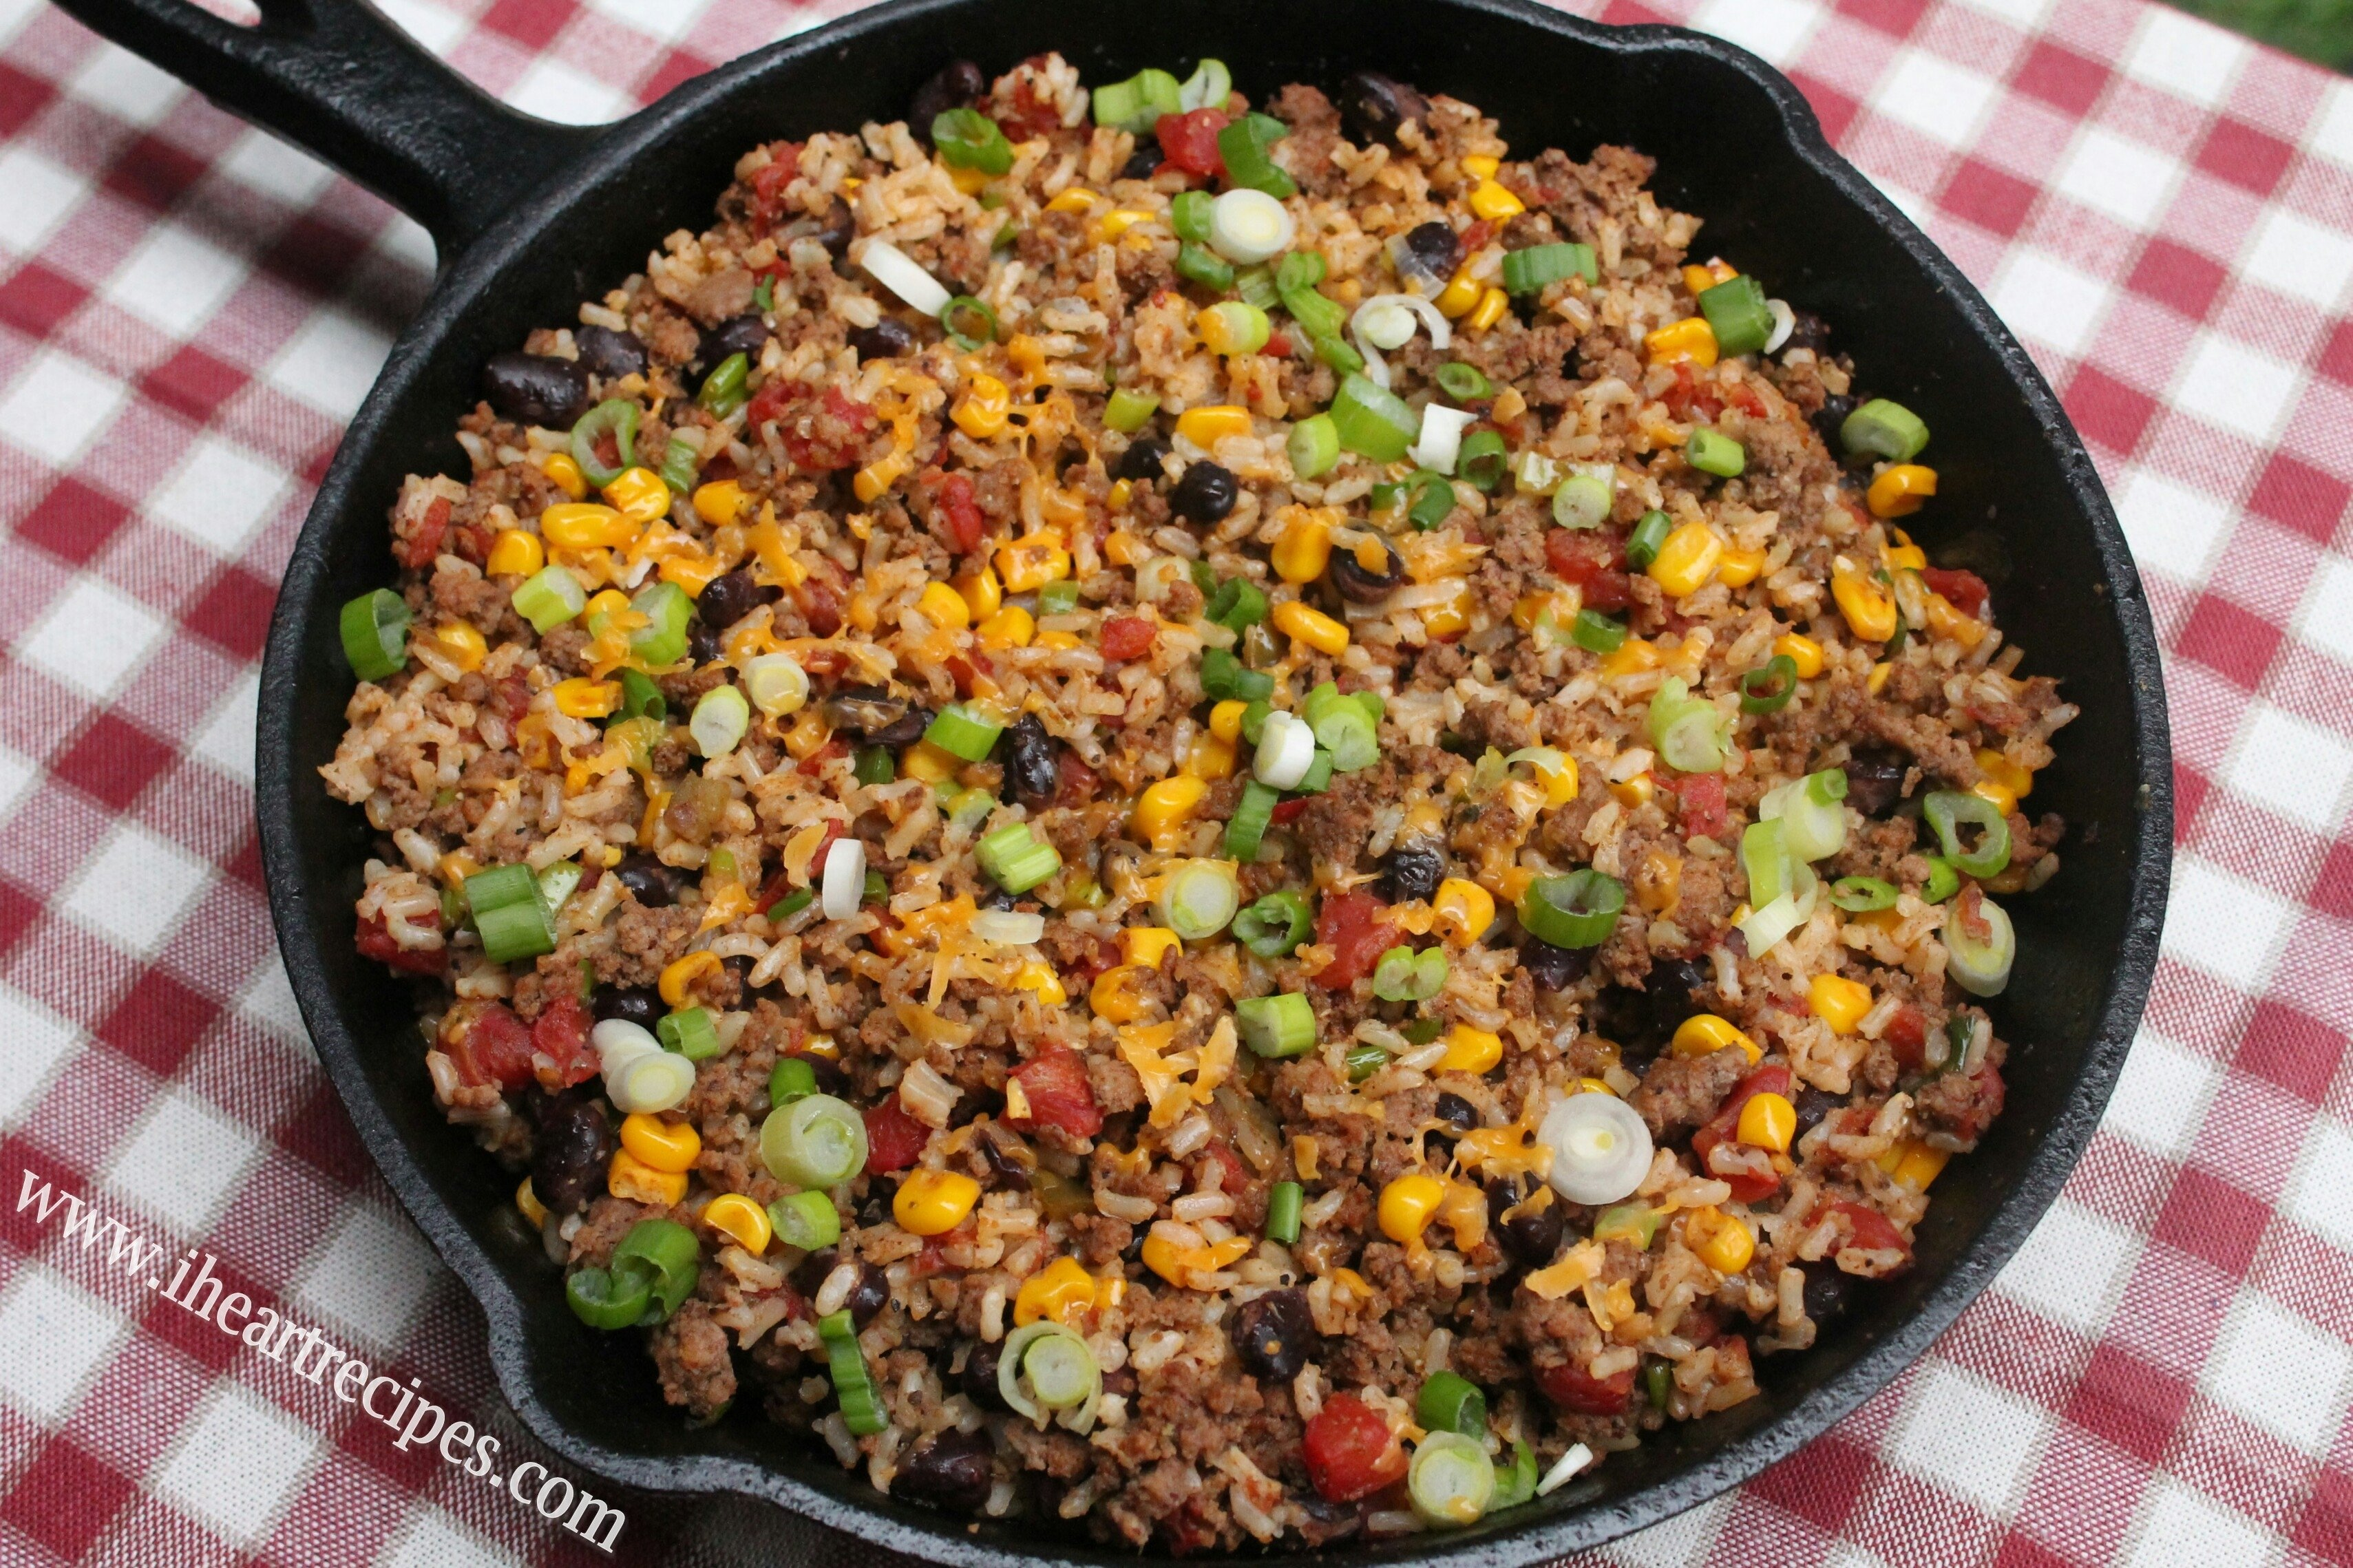 10 Fashionable Simple Dinner Ideas With Ground Beef tex mex beef skillet i heart recipes 6 2020